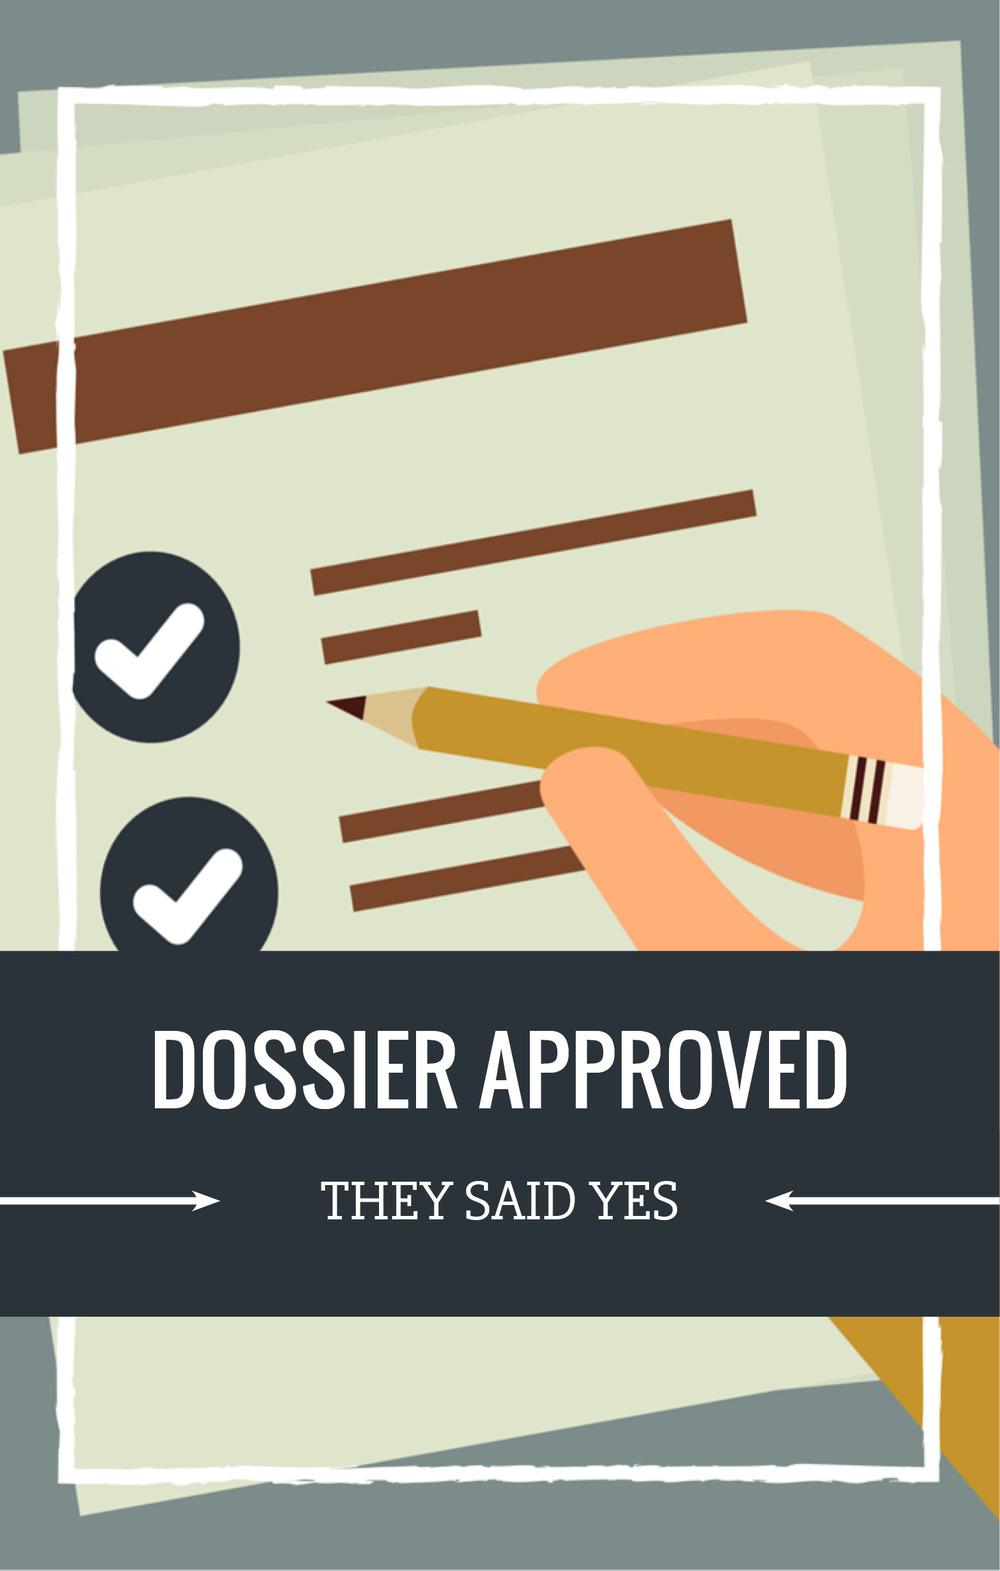 Dossier Approved - NJS Design Company